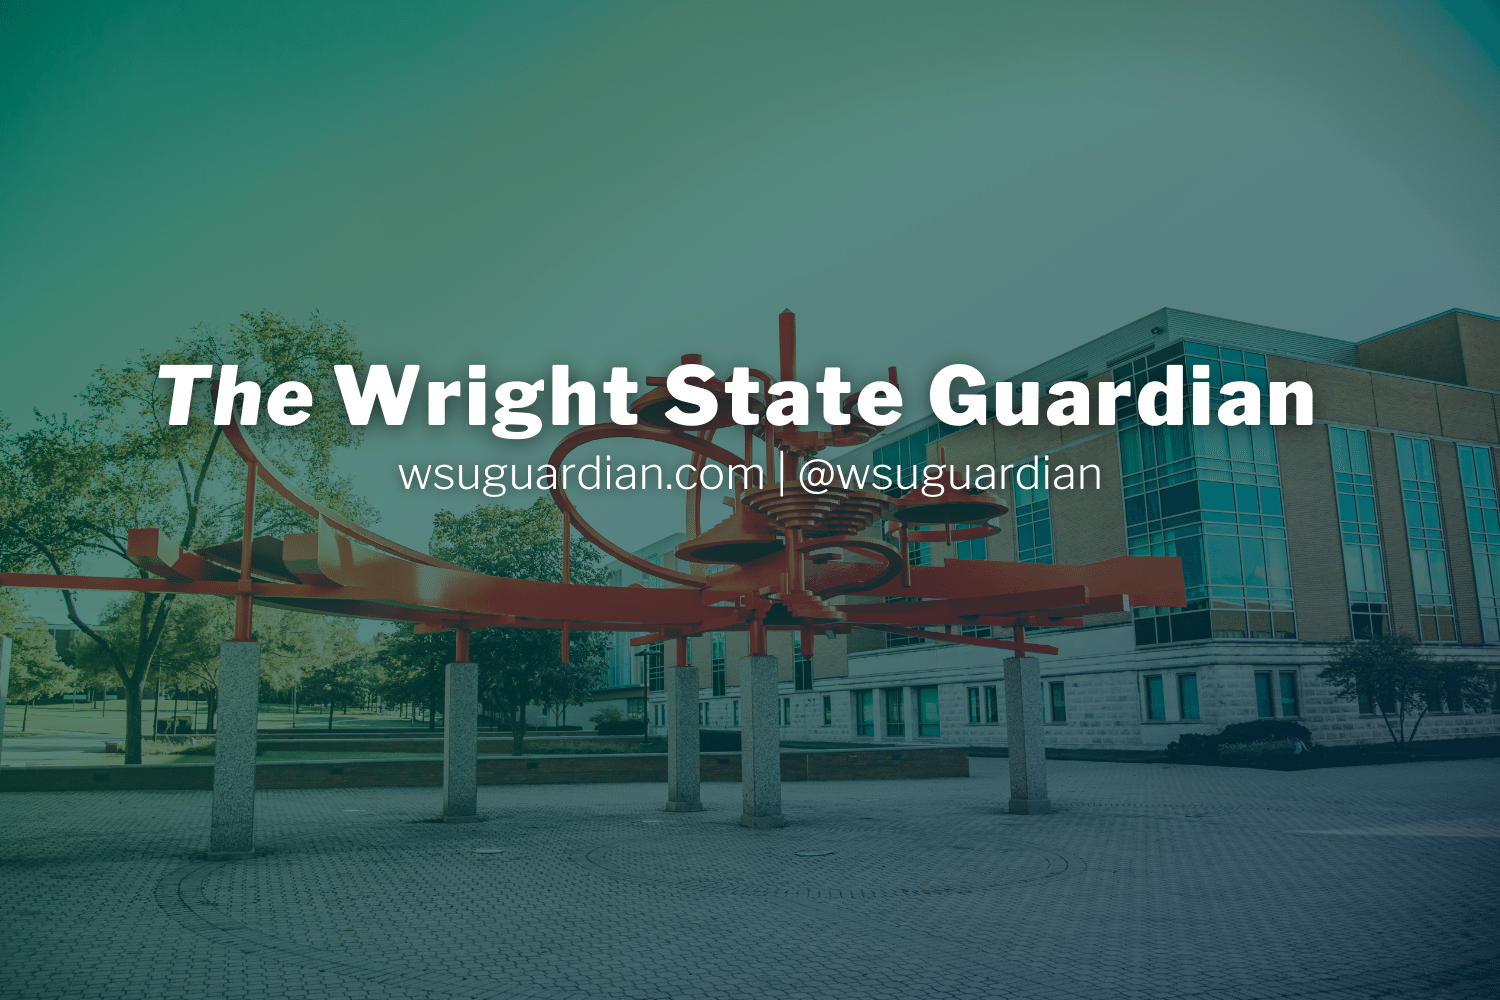 The Wright State Guardian